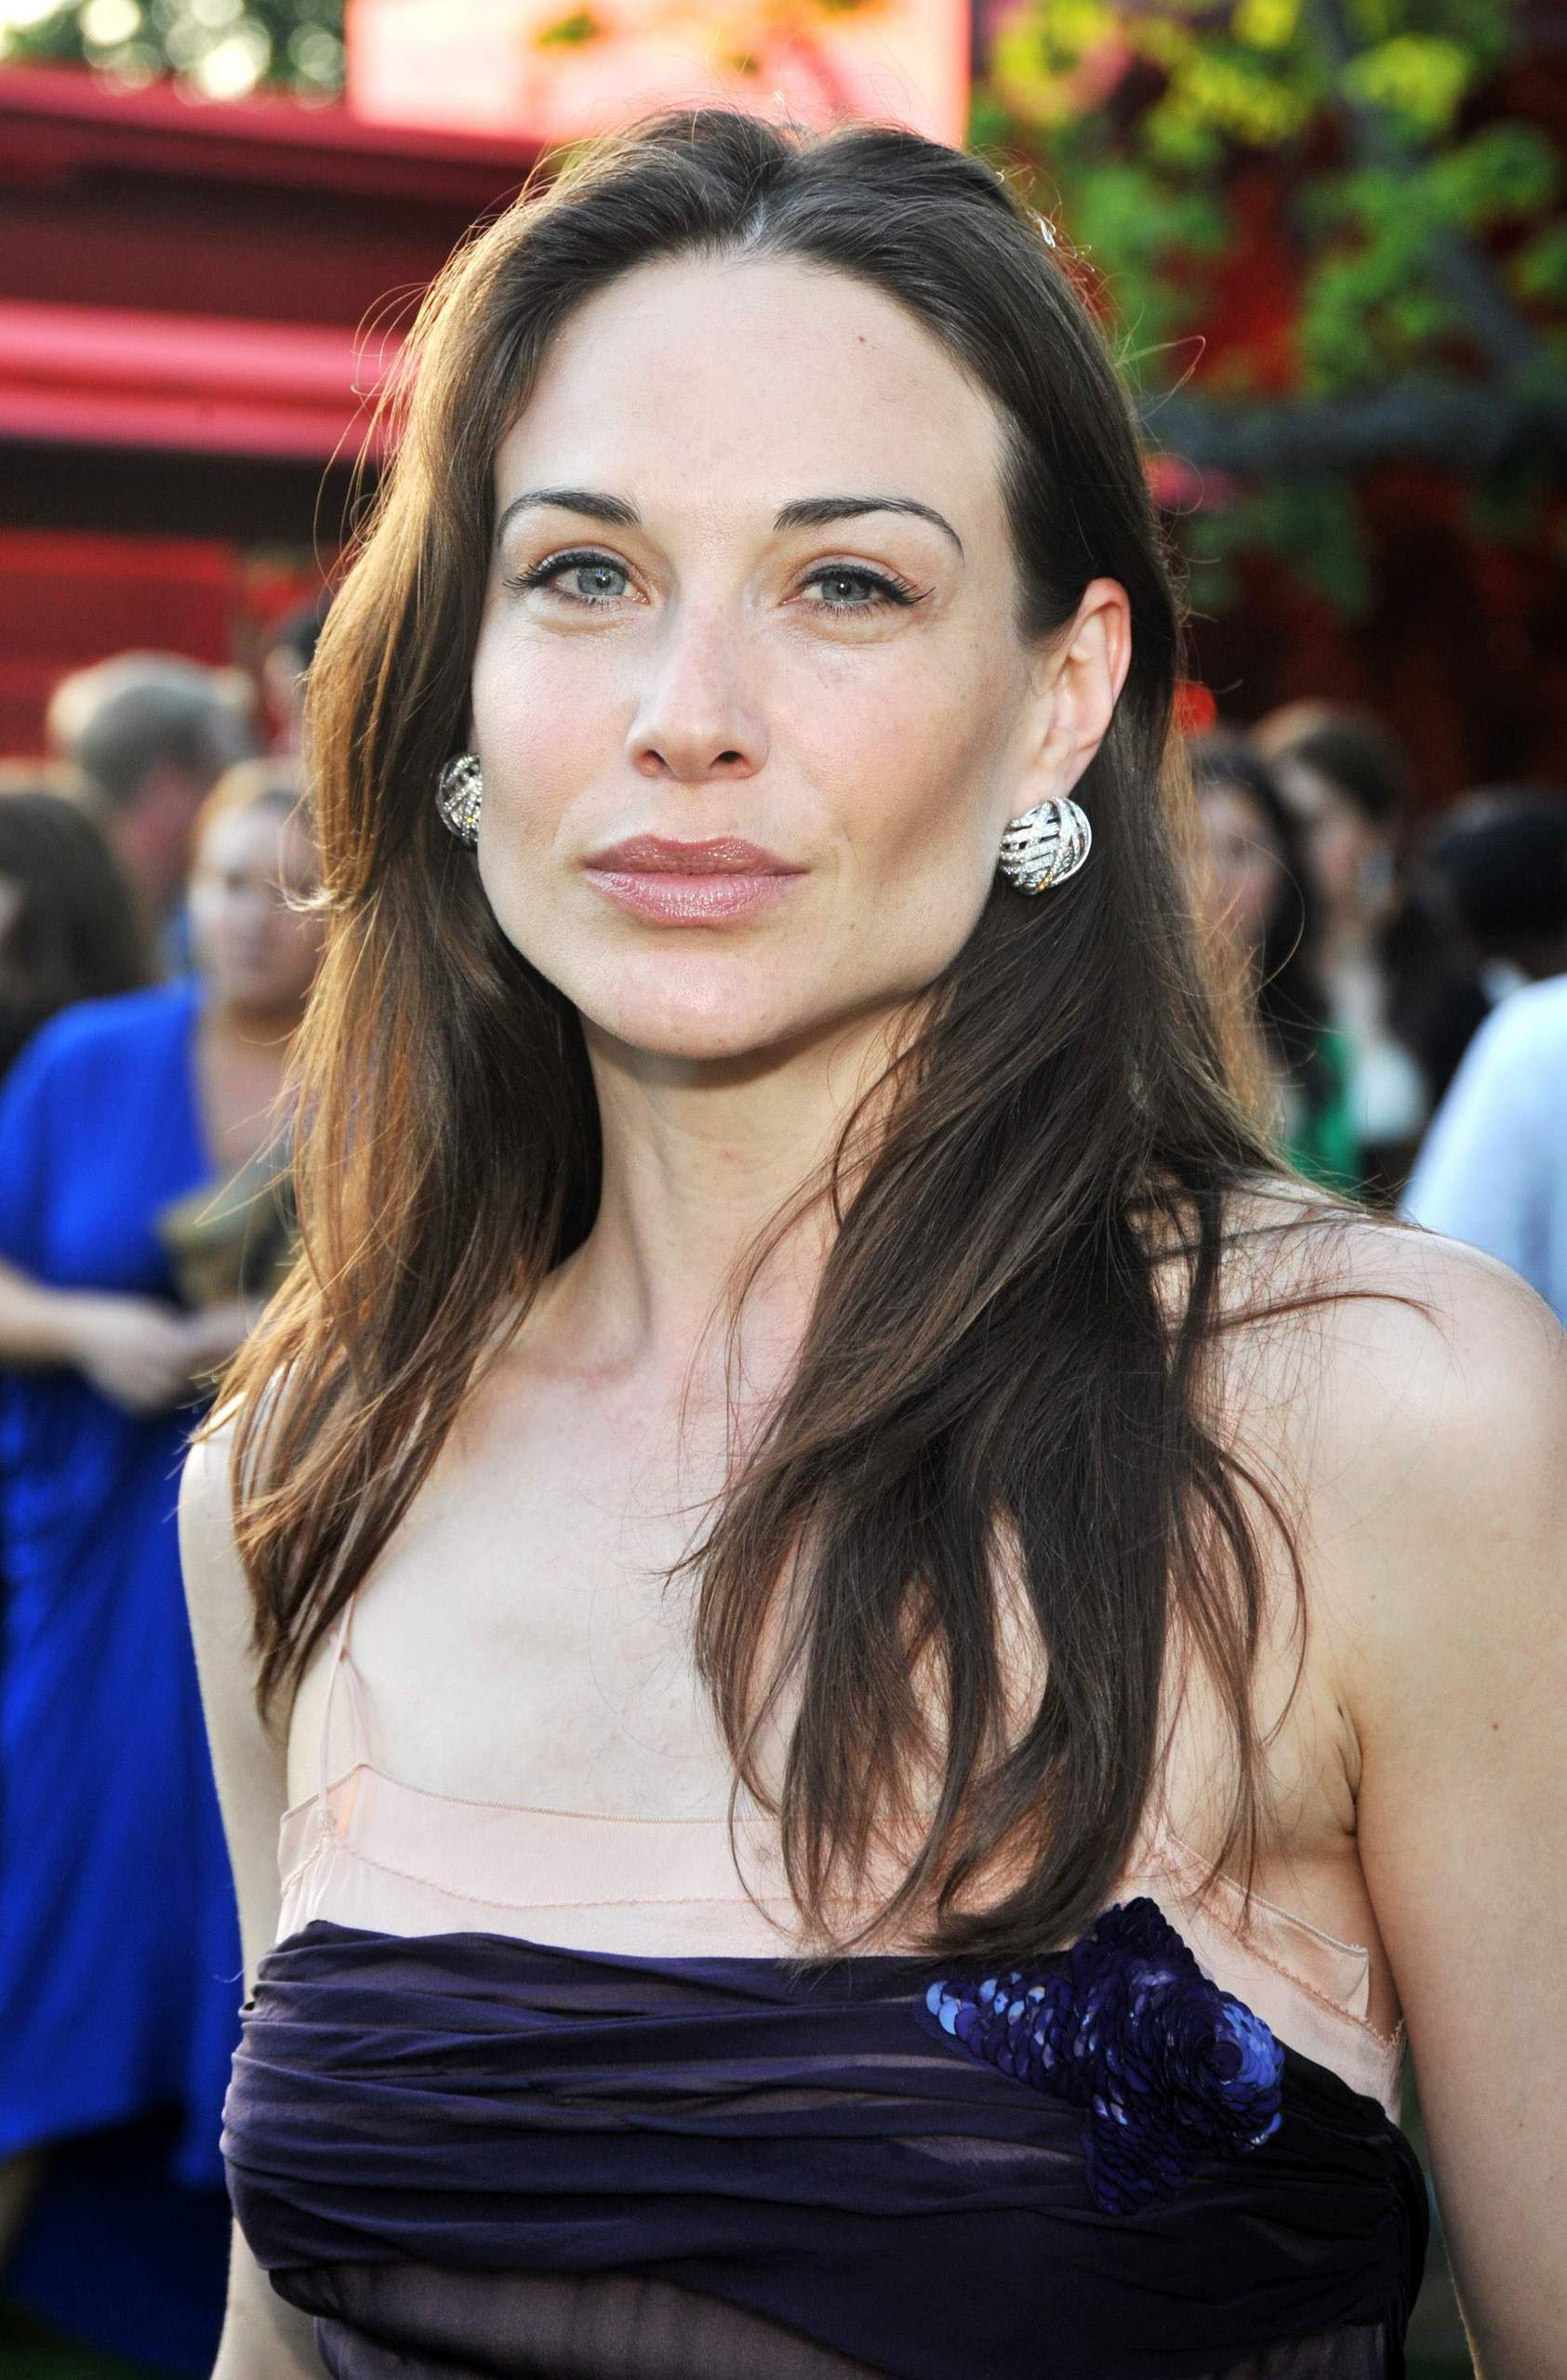 Claire Forlani nudes (76 photos), Tits, Fappening, Boobs, cameltoe 2019